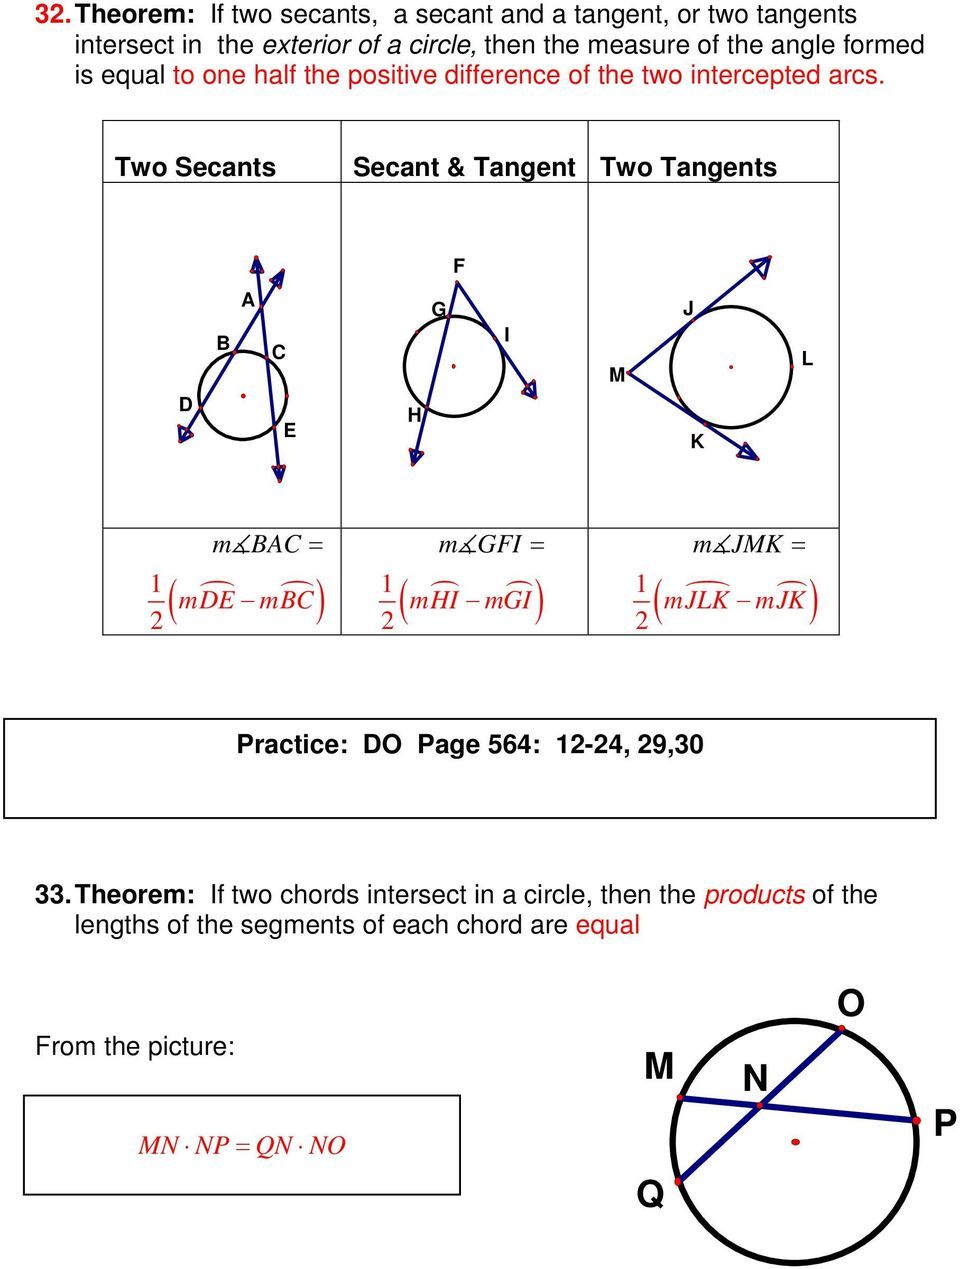 Two Secants Secant & Tangent Two Tangents I M L m 1 2 m m mi 1 2 m I mi mm 1 2 ml m Practice: O Page 564: 12-24, 29,30 33.